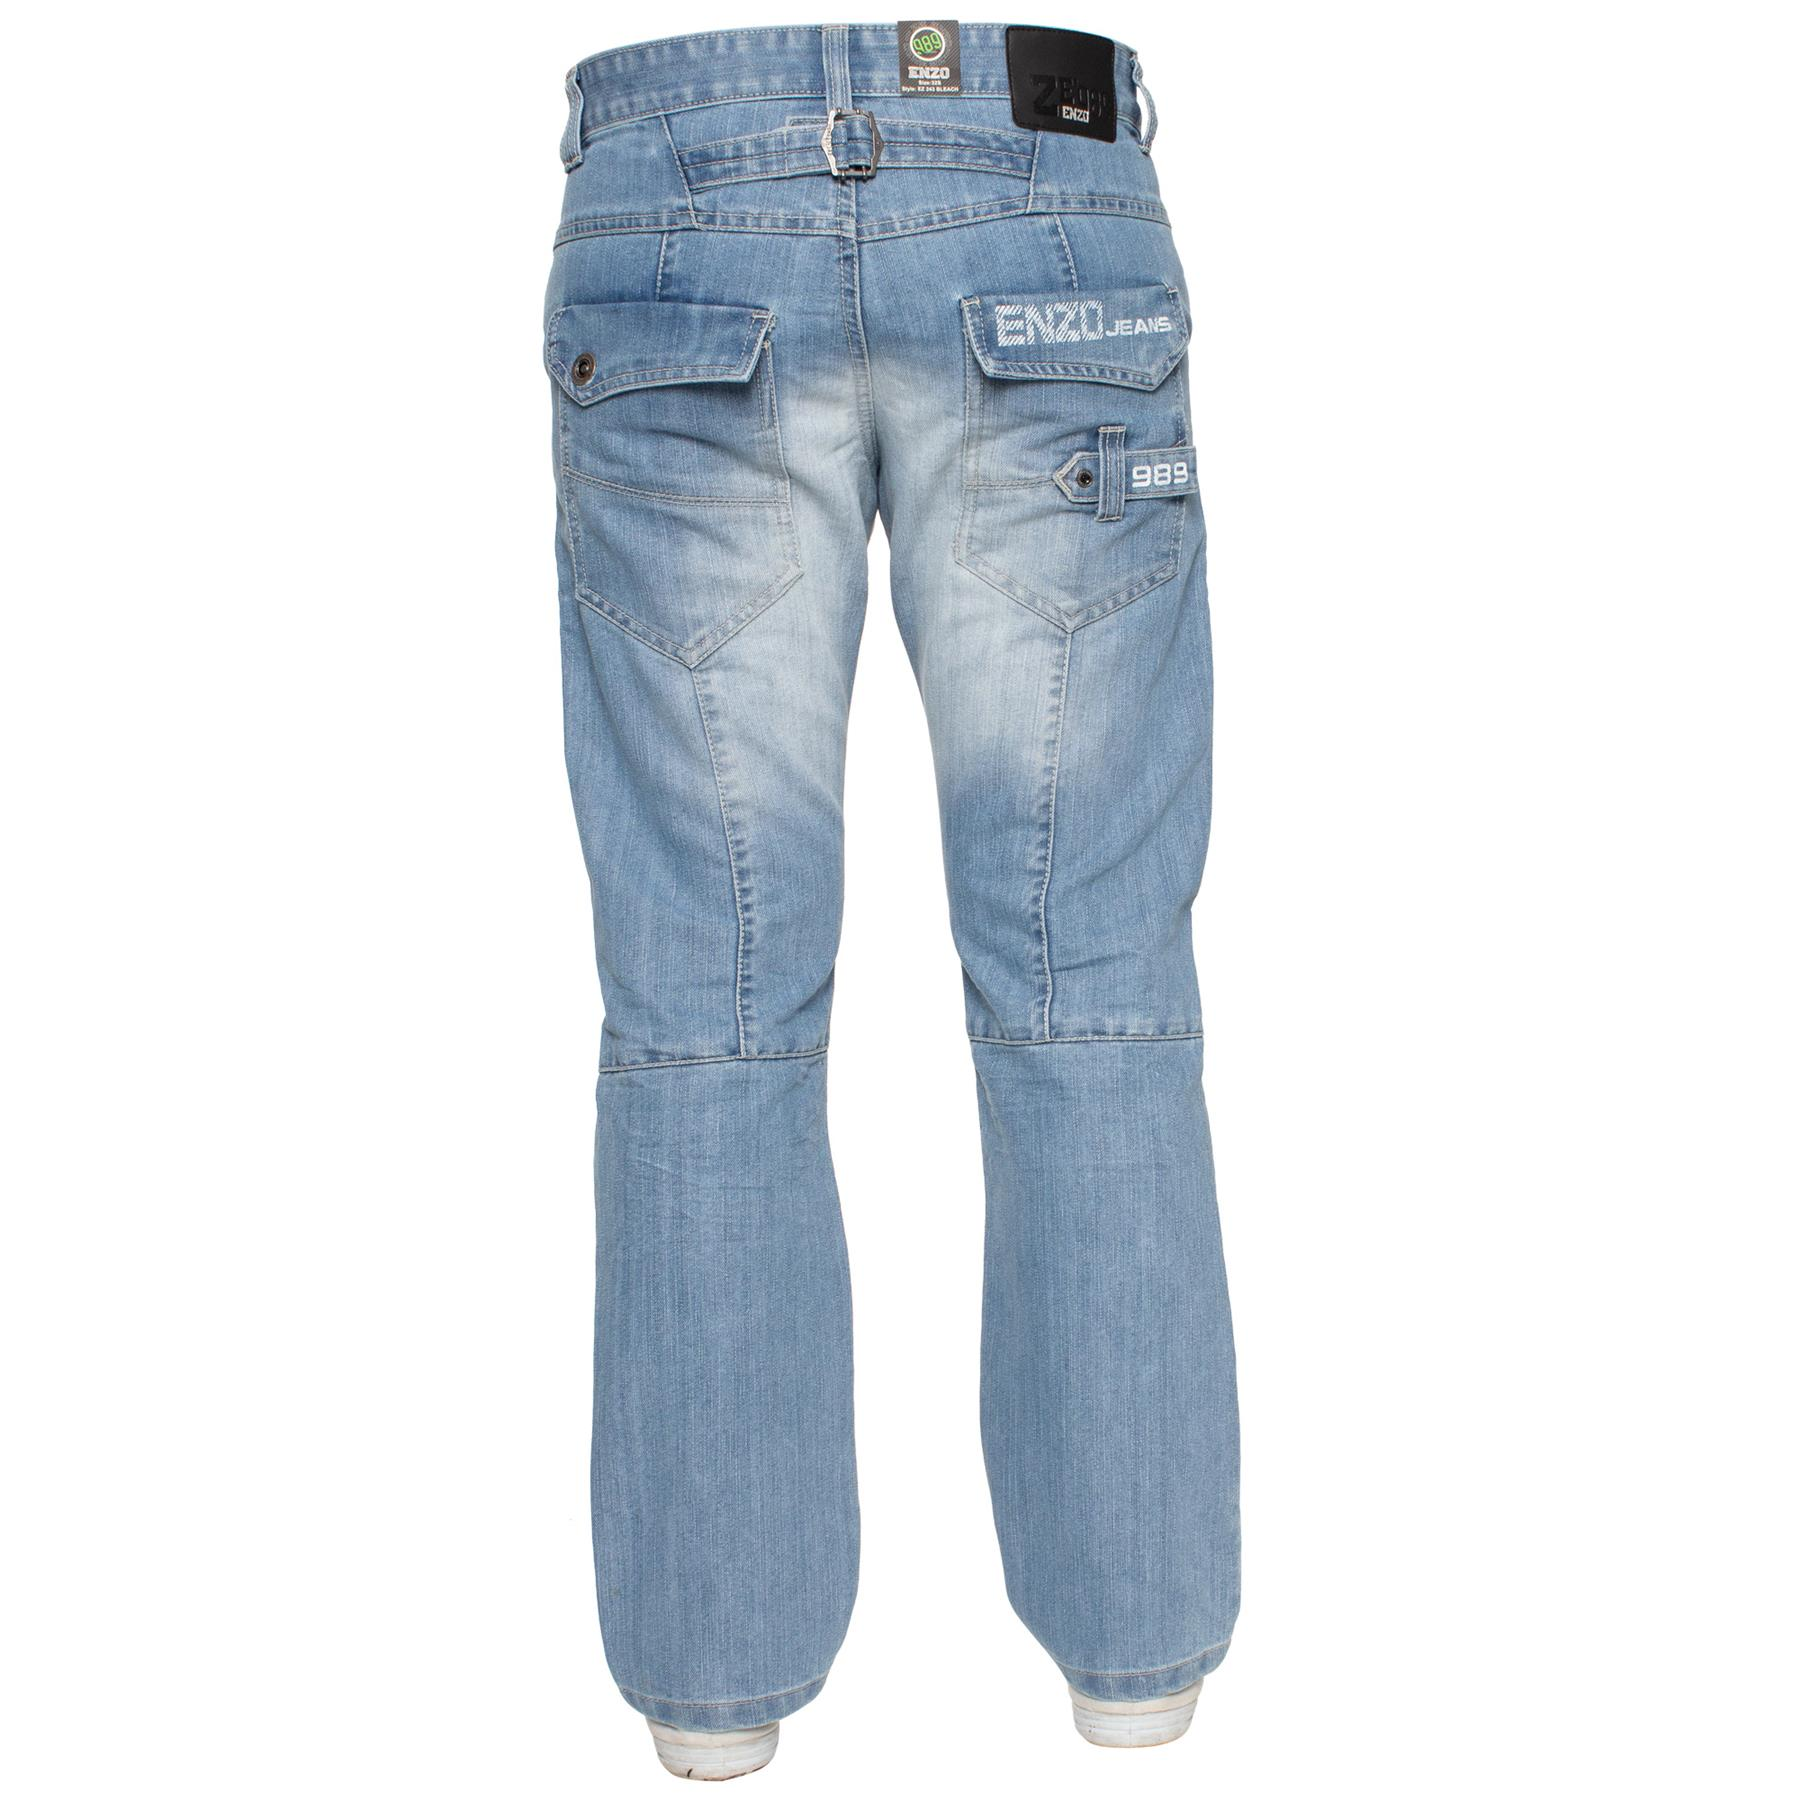 Enzo-Mens-Jeans-Big-Tall-Leg-King-Size-Denim-Pants-Chino-Trousers-Waist-44-034-60-034 miniature 54